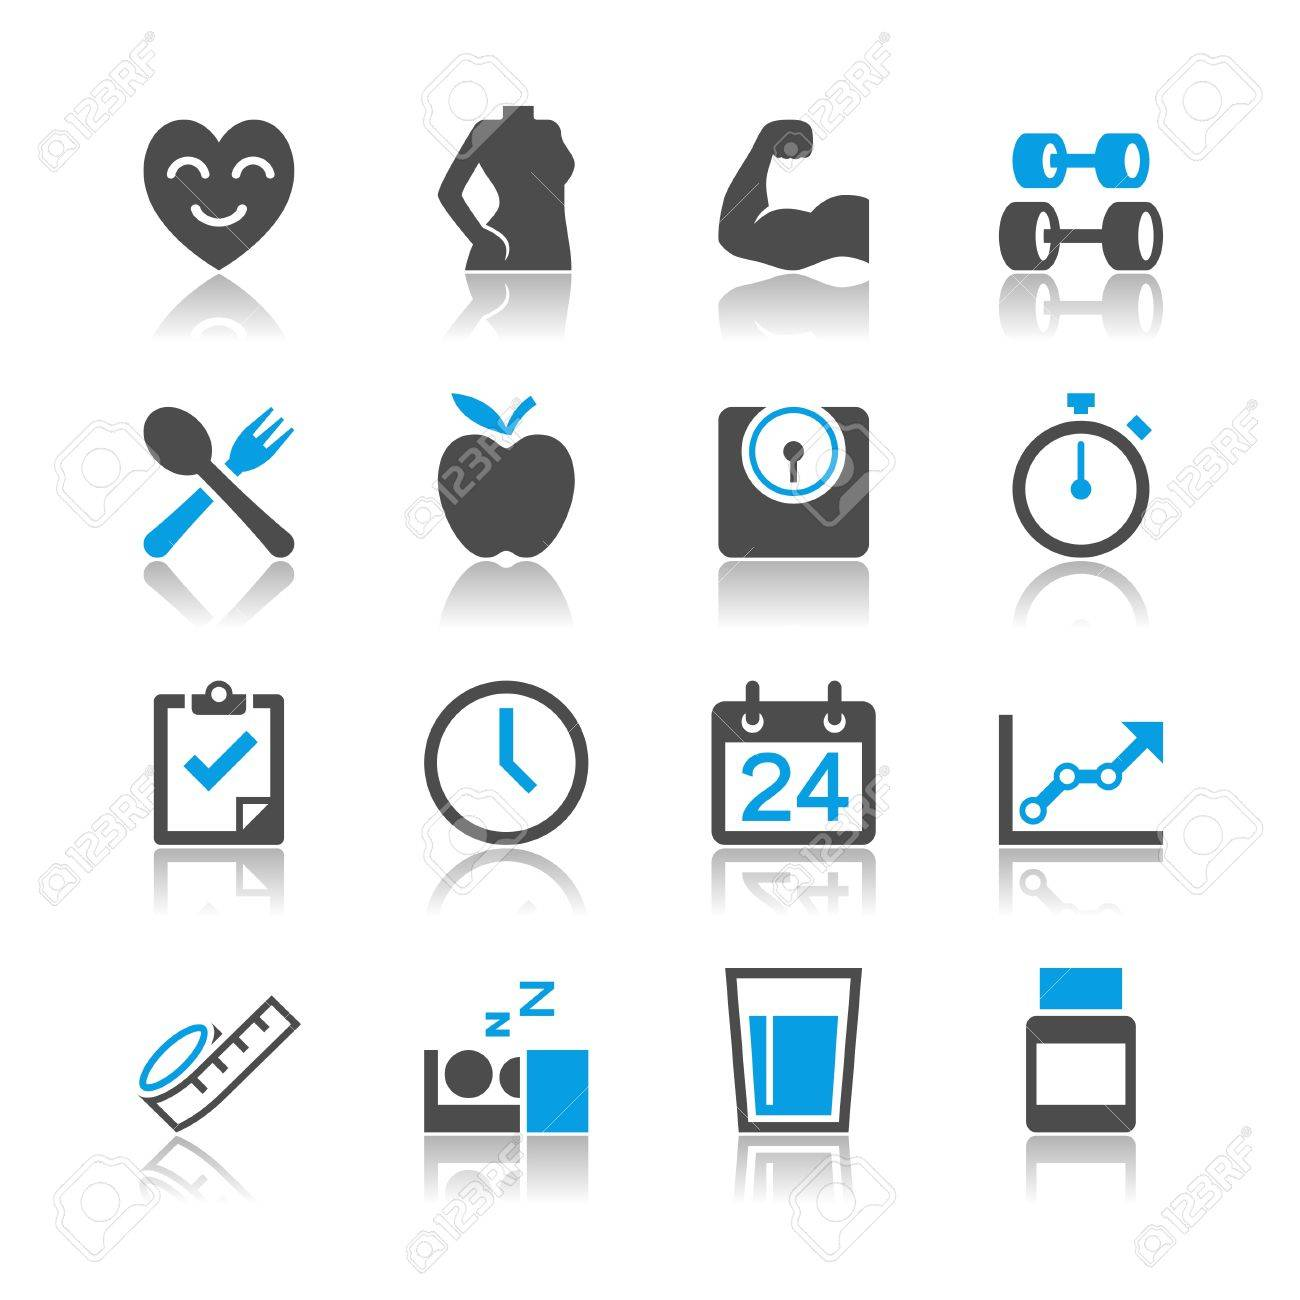 Simple vector icons. Clear and sharp. Easy to resize. EPS10 file contains opacity masks. Stock Vector - 21212103